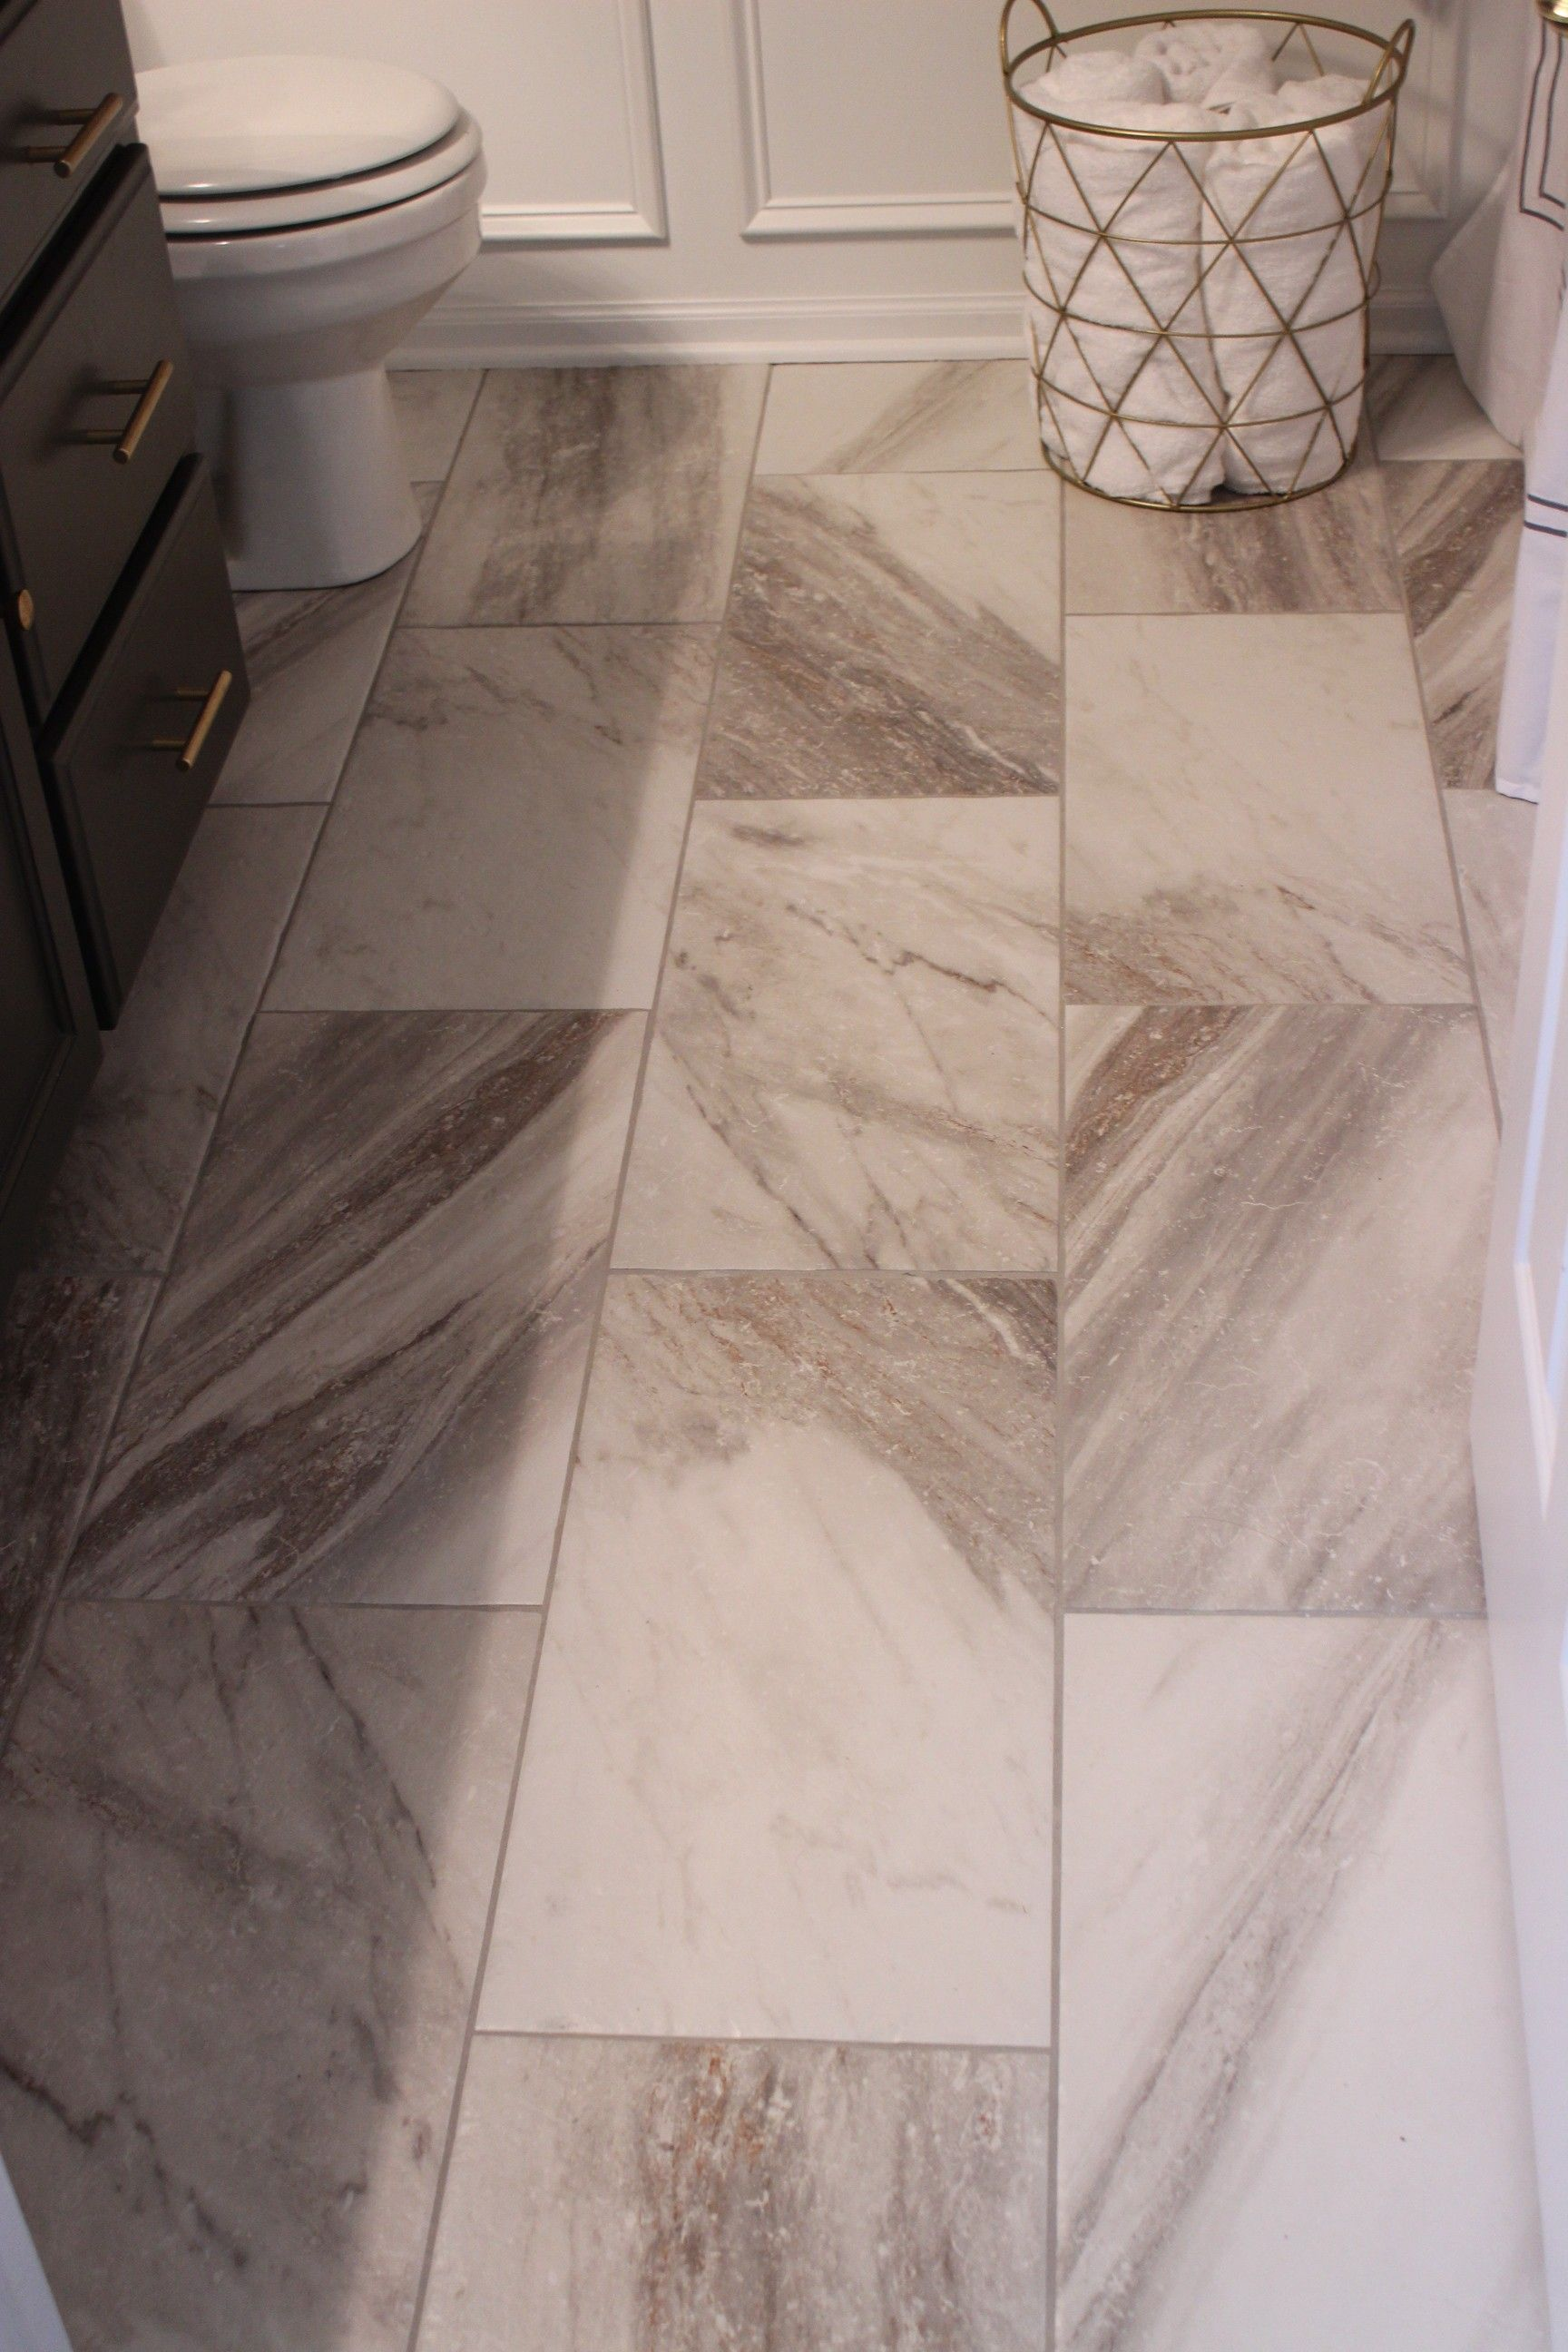 Sovereign stone pearl porcelain tile in 12 x 24 at Lowes ...